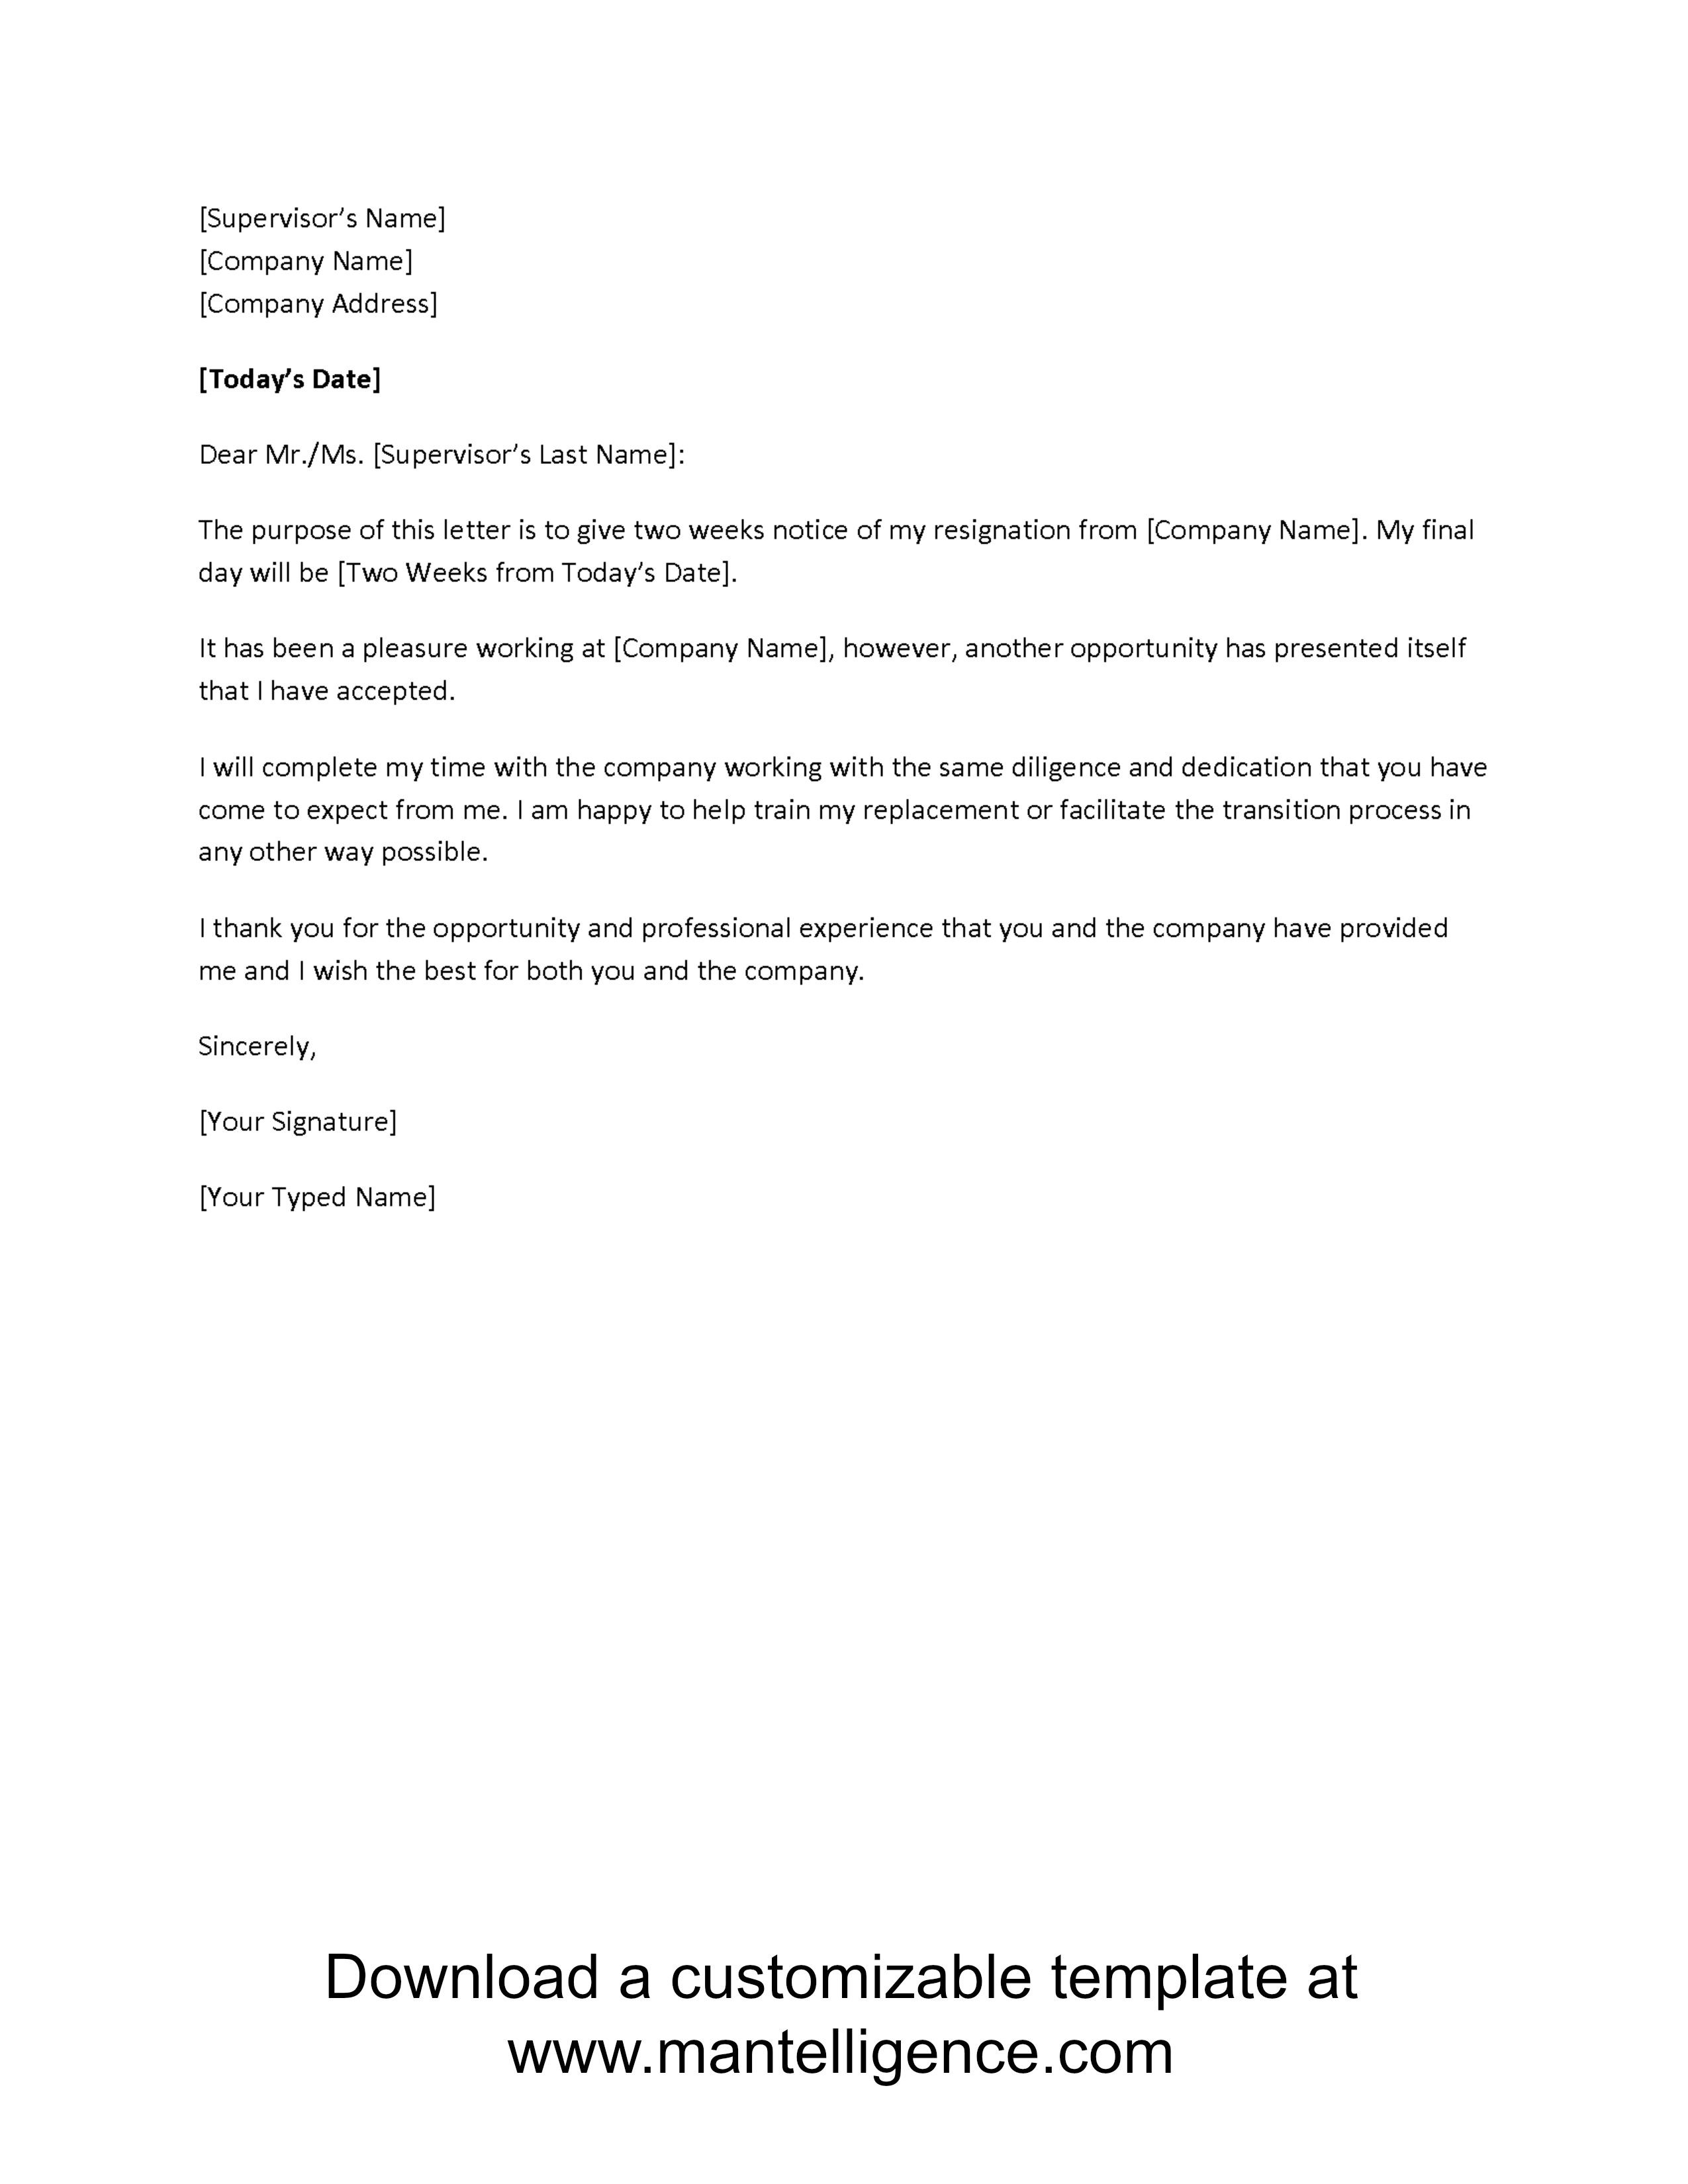 You Can See This New Business Letter format for Two